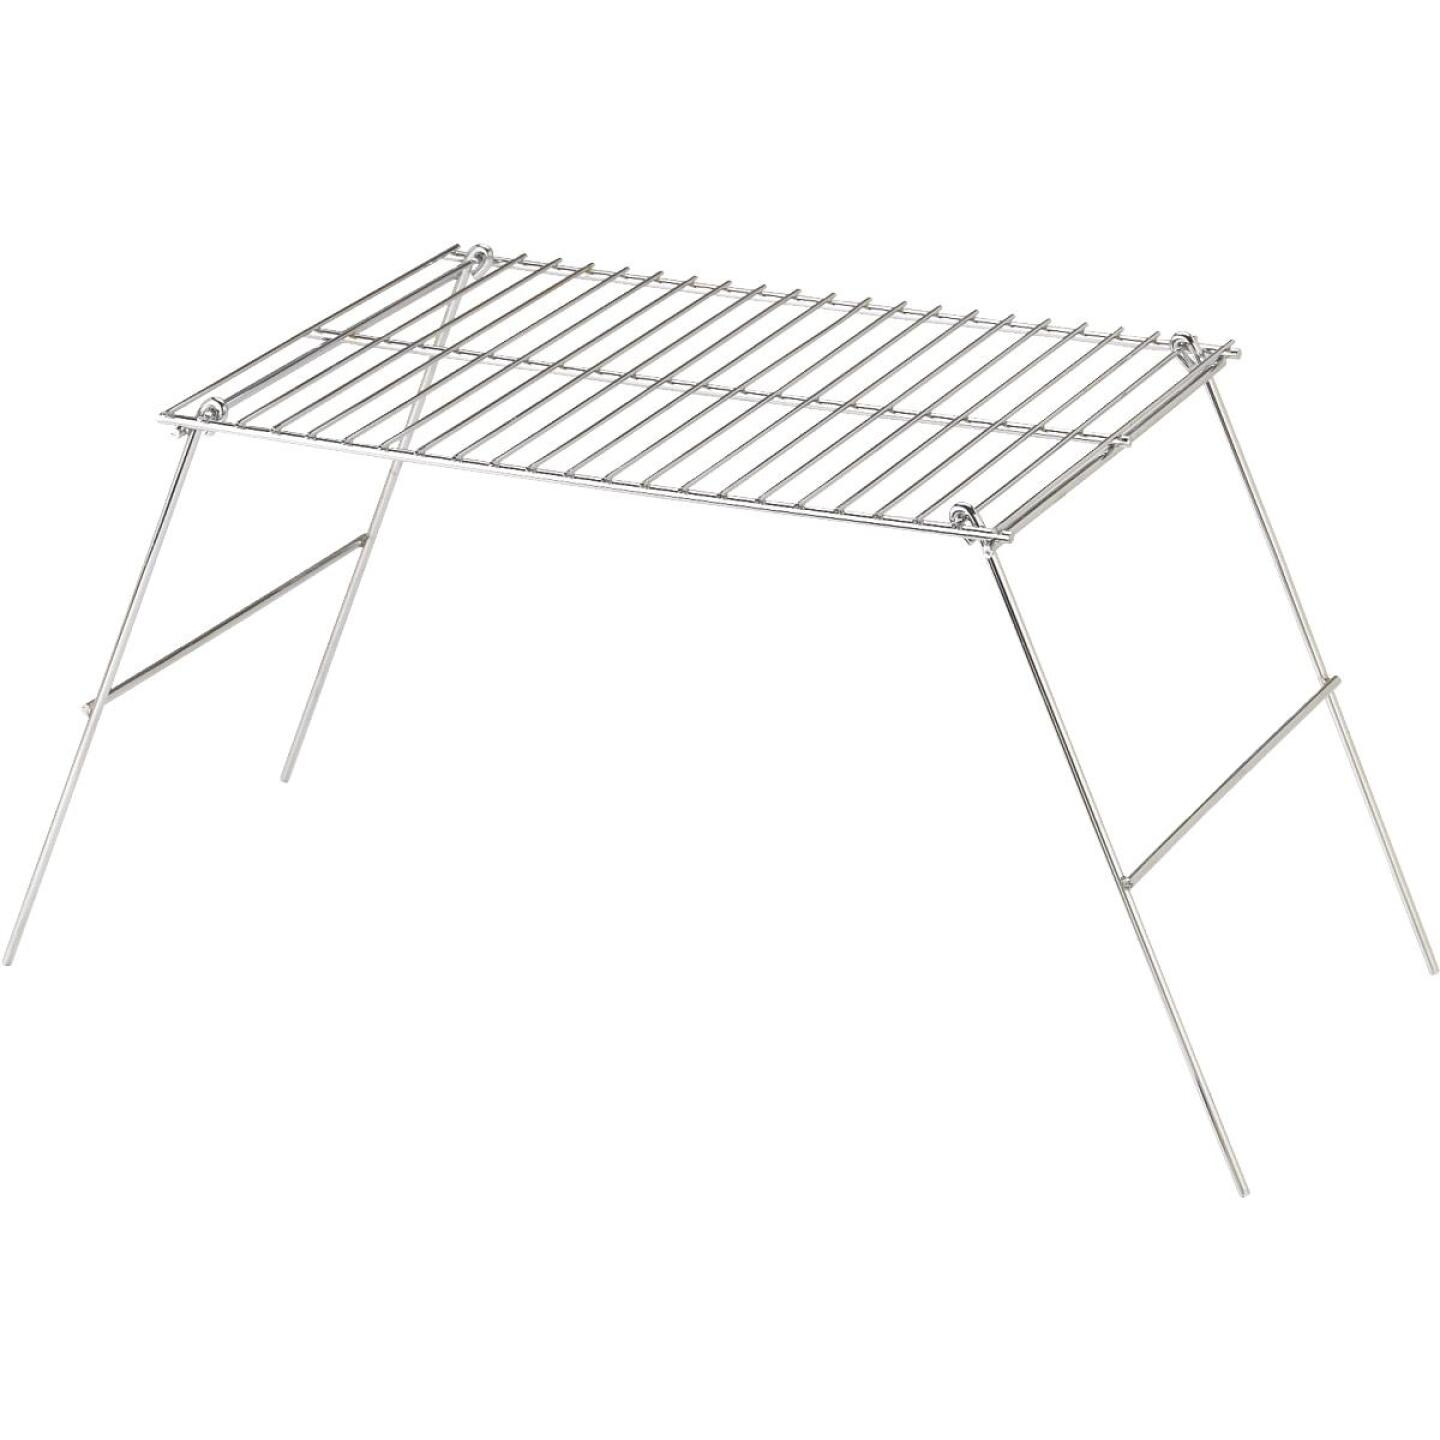 Rome Industries 10-1/2 In. W. x 12 In. H. x 17 In. L. Chrome-Plated Metal Camp Grill with Legs Image 1